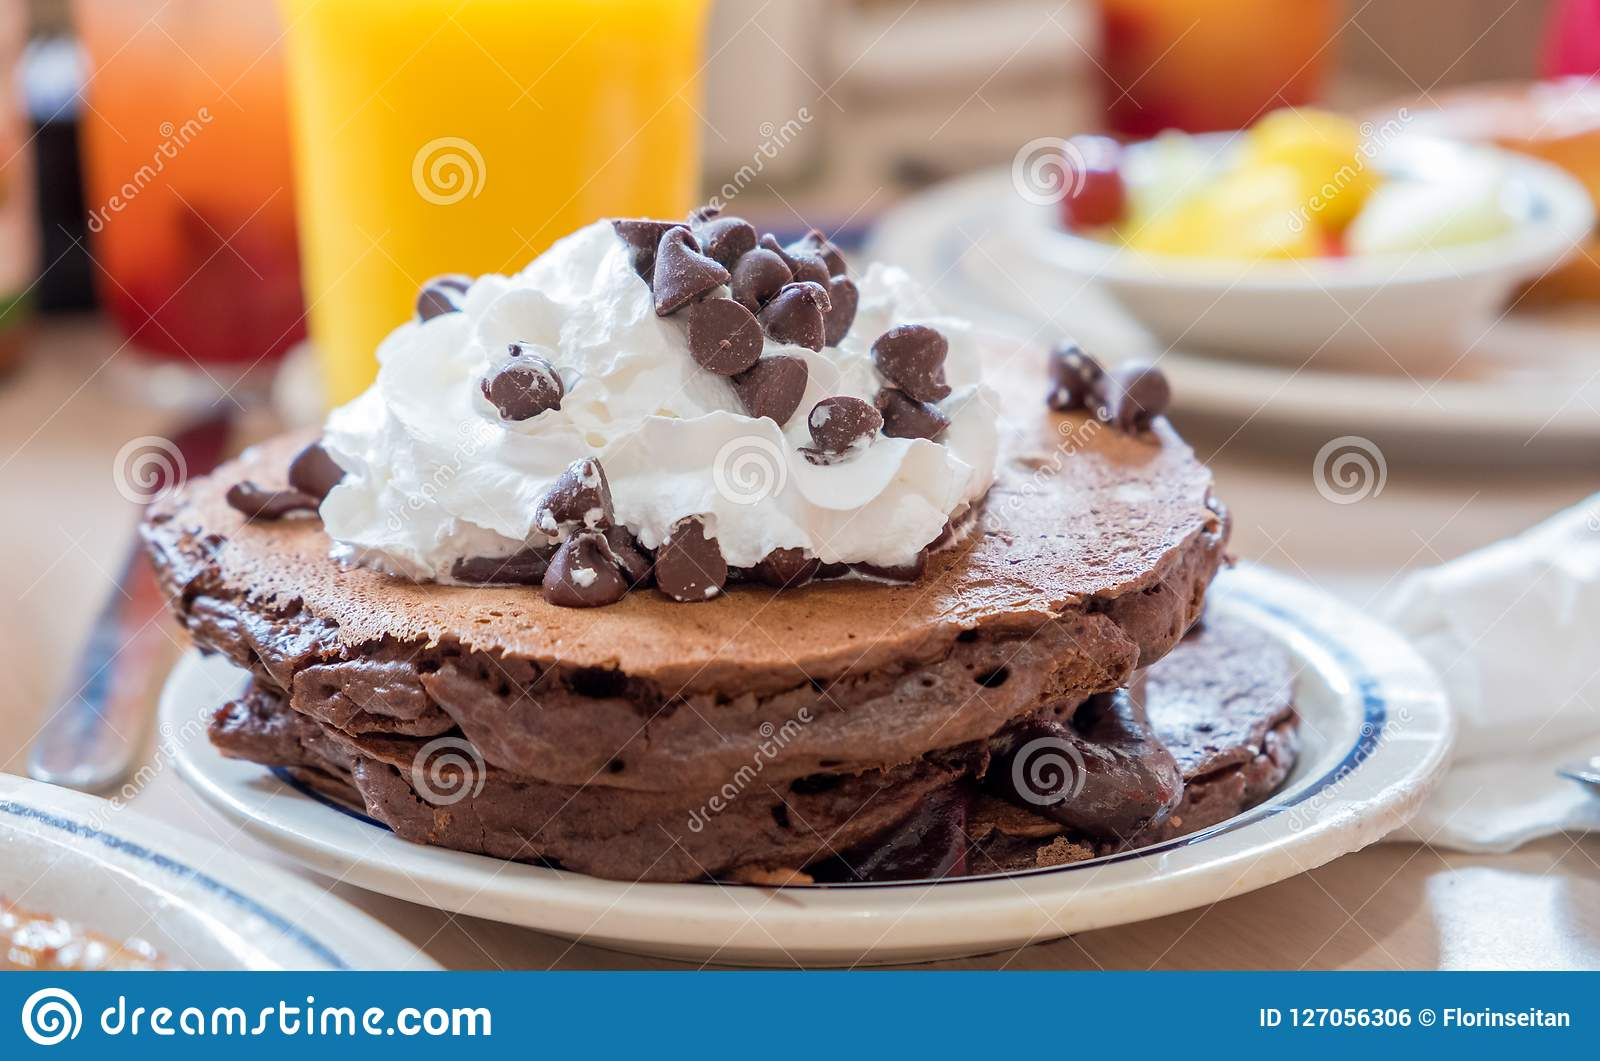 Plate Of Chocolate Pancakes With Whipped Cream And Chocolate Chi Stock Photo Image Of Morning Desert 127056306